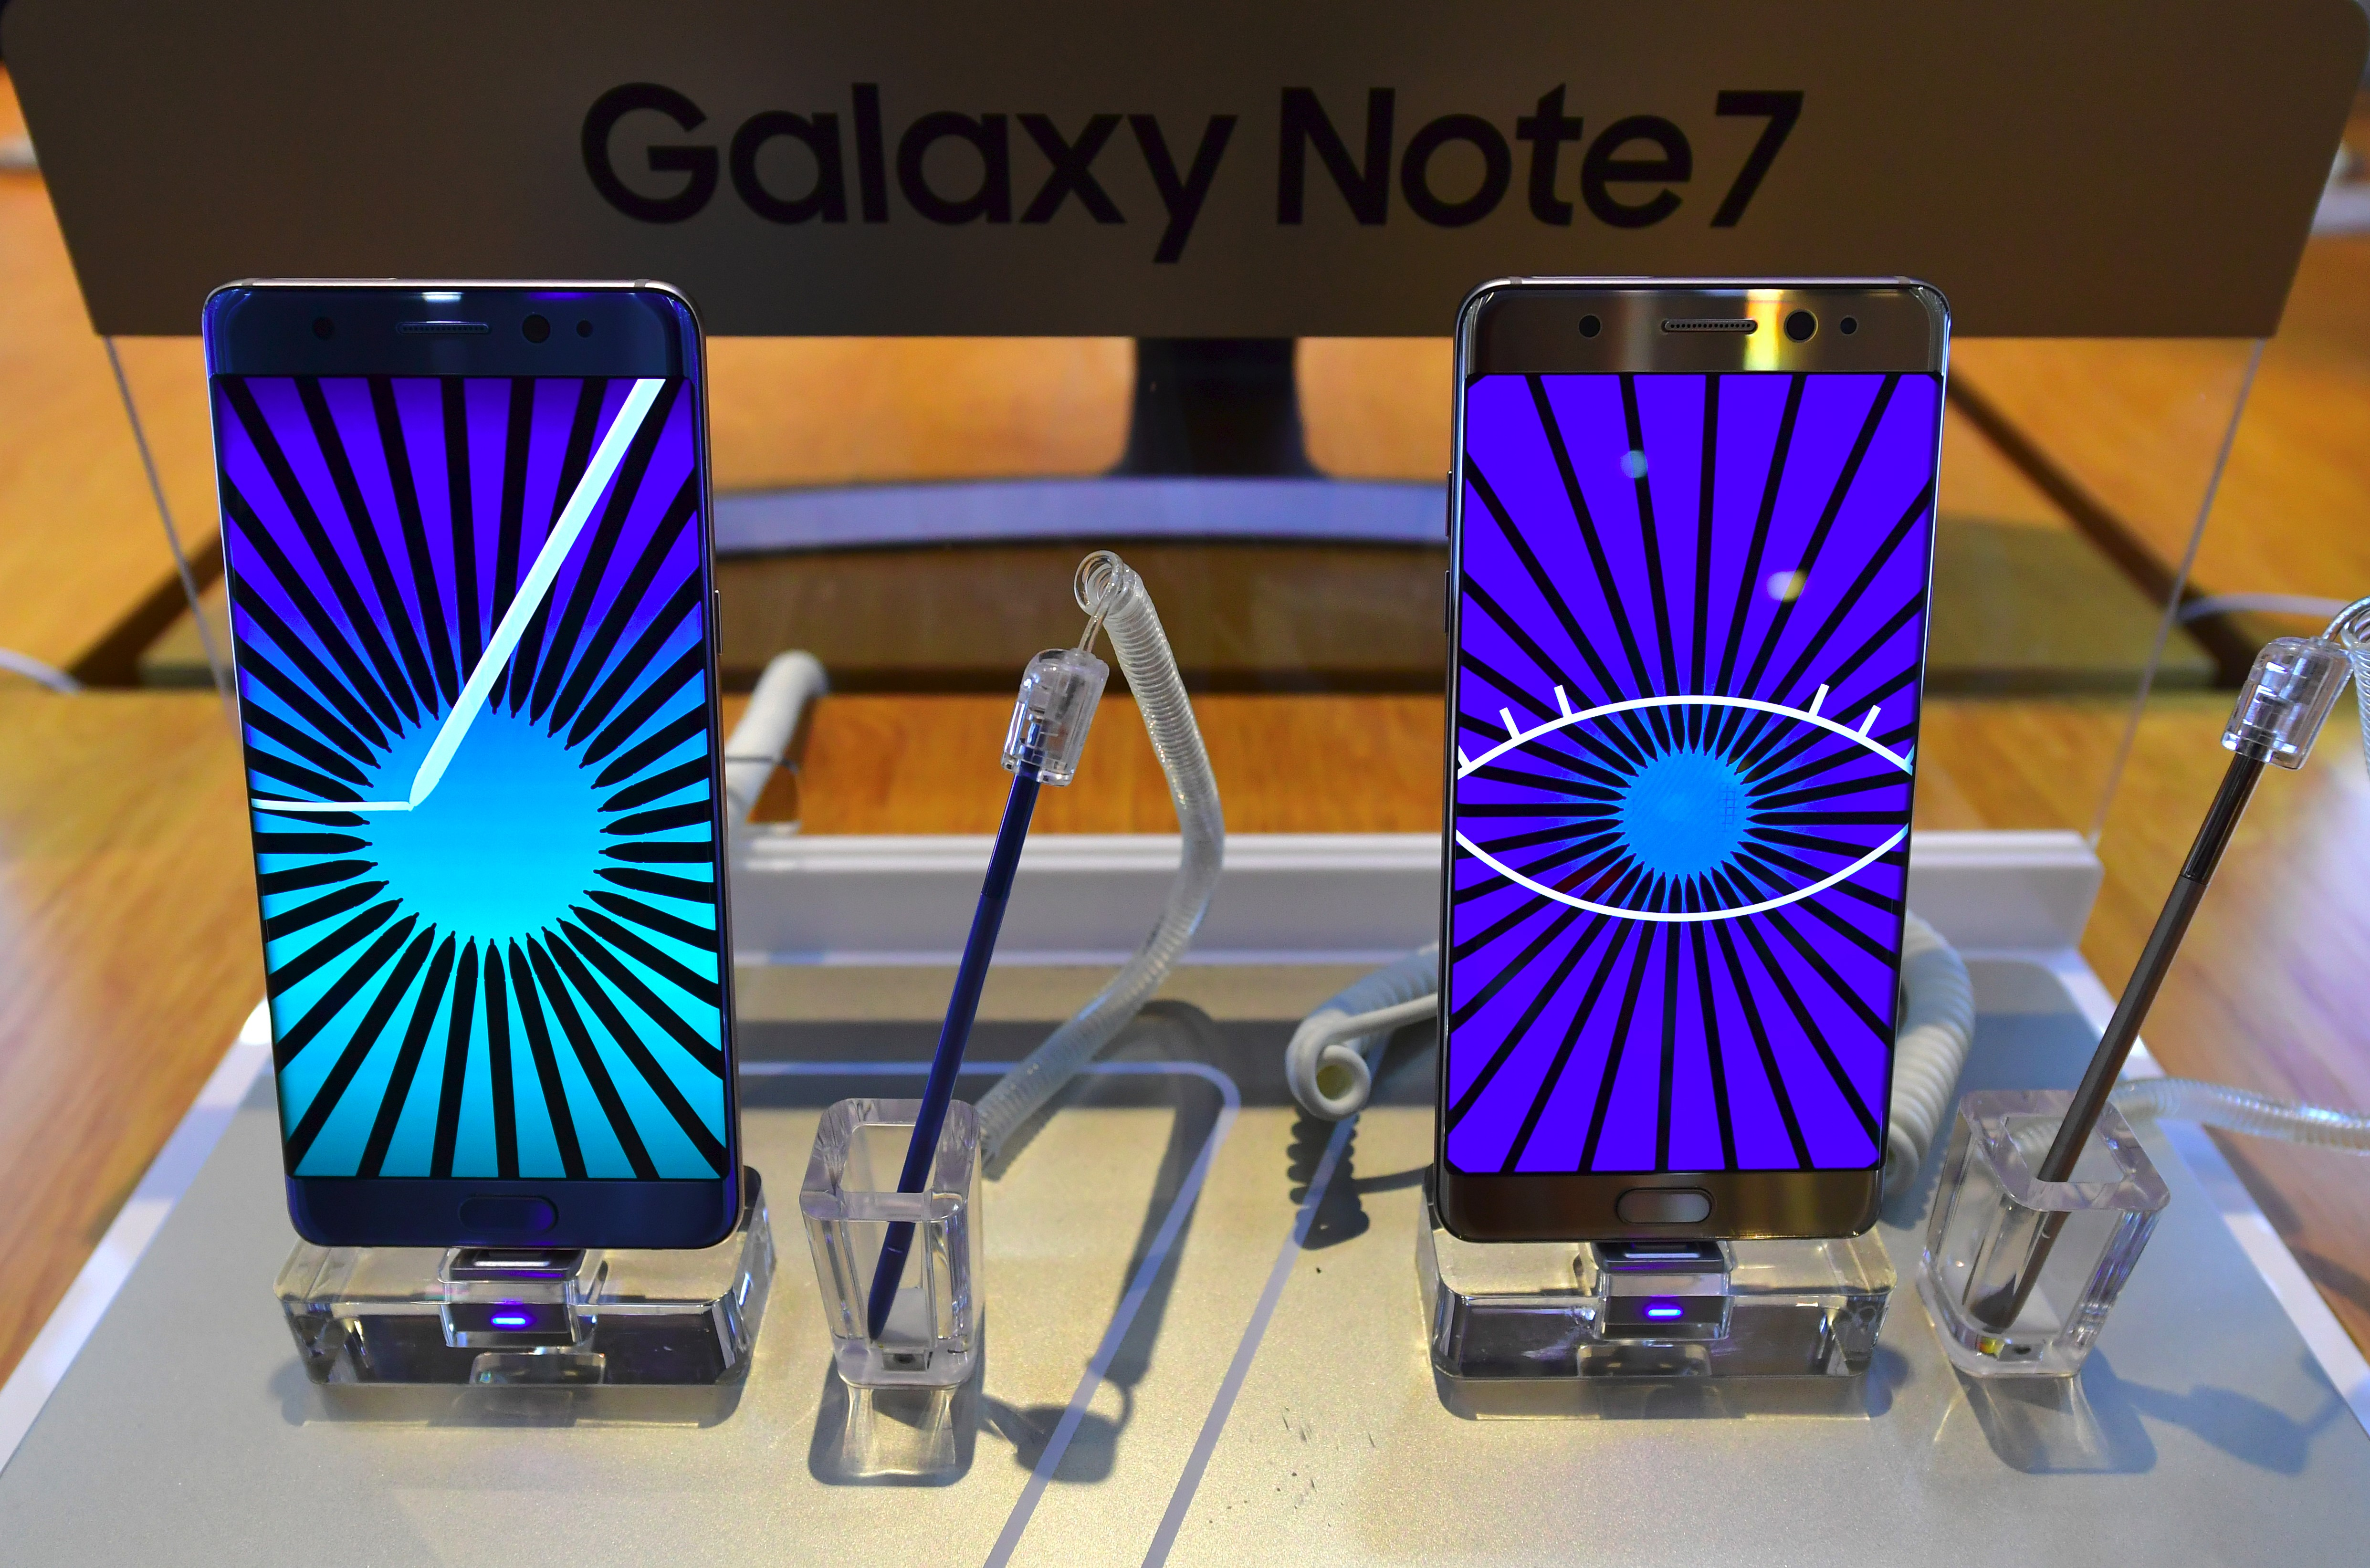 Samsung Galaxy Note7 smartphones (credit: JUNG YEON-JE/AFP/Getty Images)